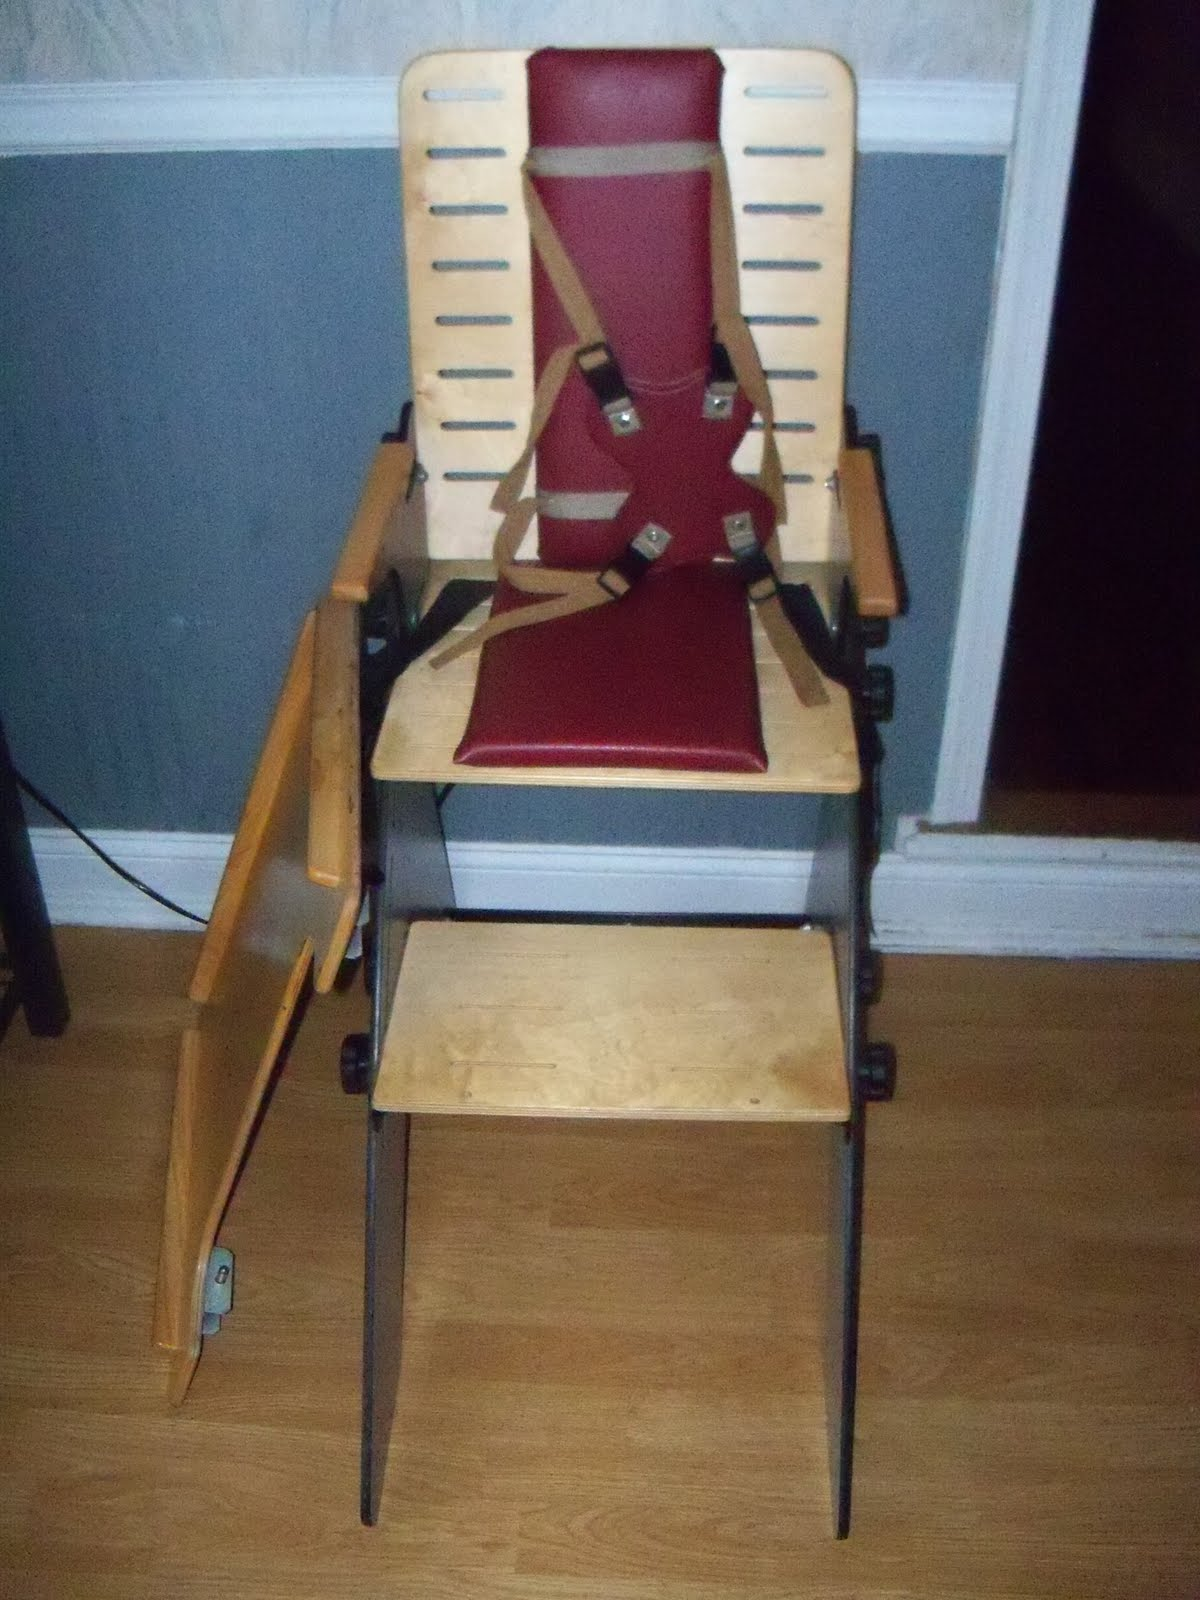 My Life With an Angel High Chair for Older Kids